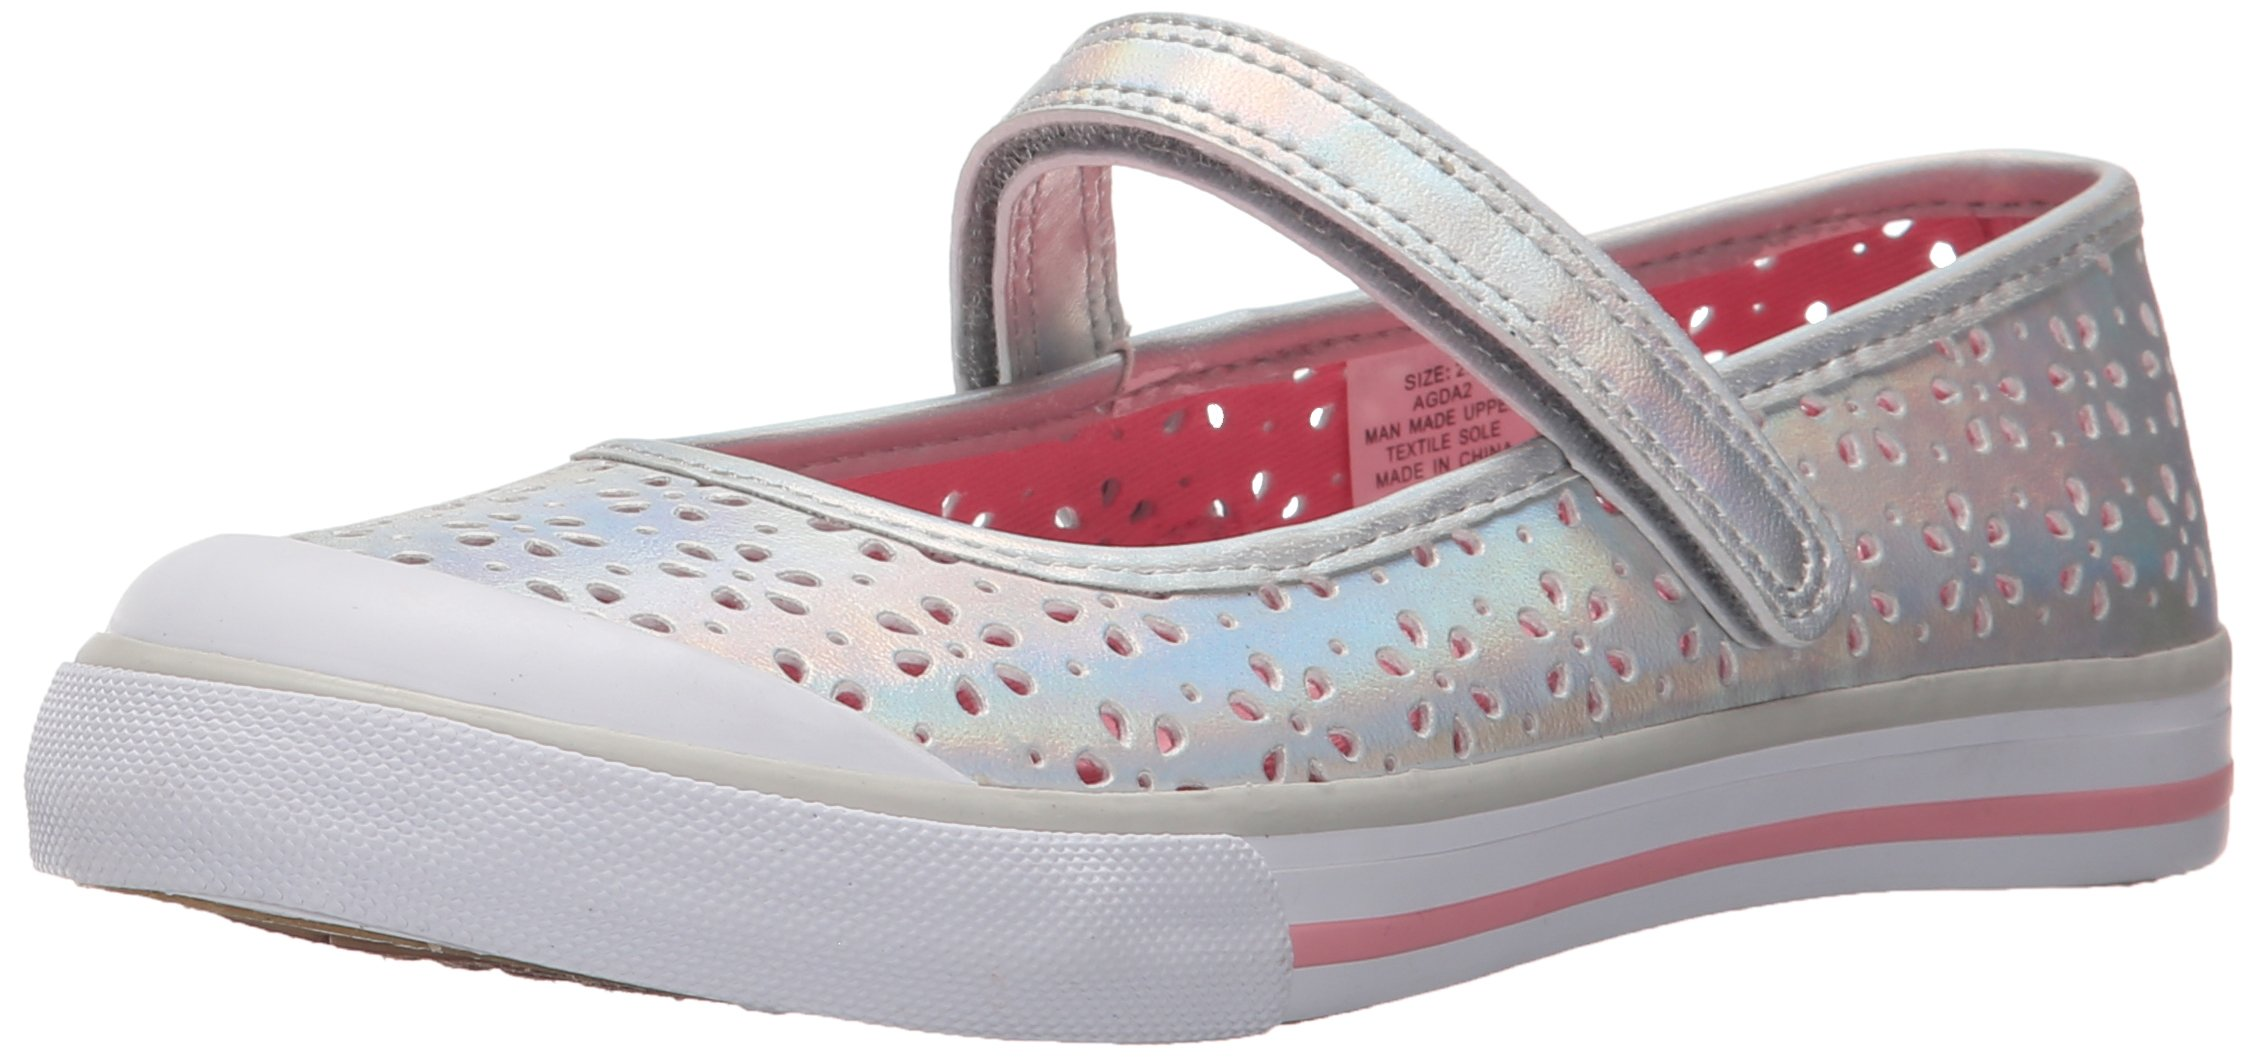 Hanna Andersson Agda Girl's Mary Jane (Toddler/Little Kid/Big Kid), Silver, 9 M US Toddler